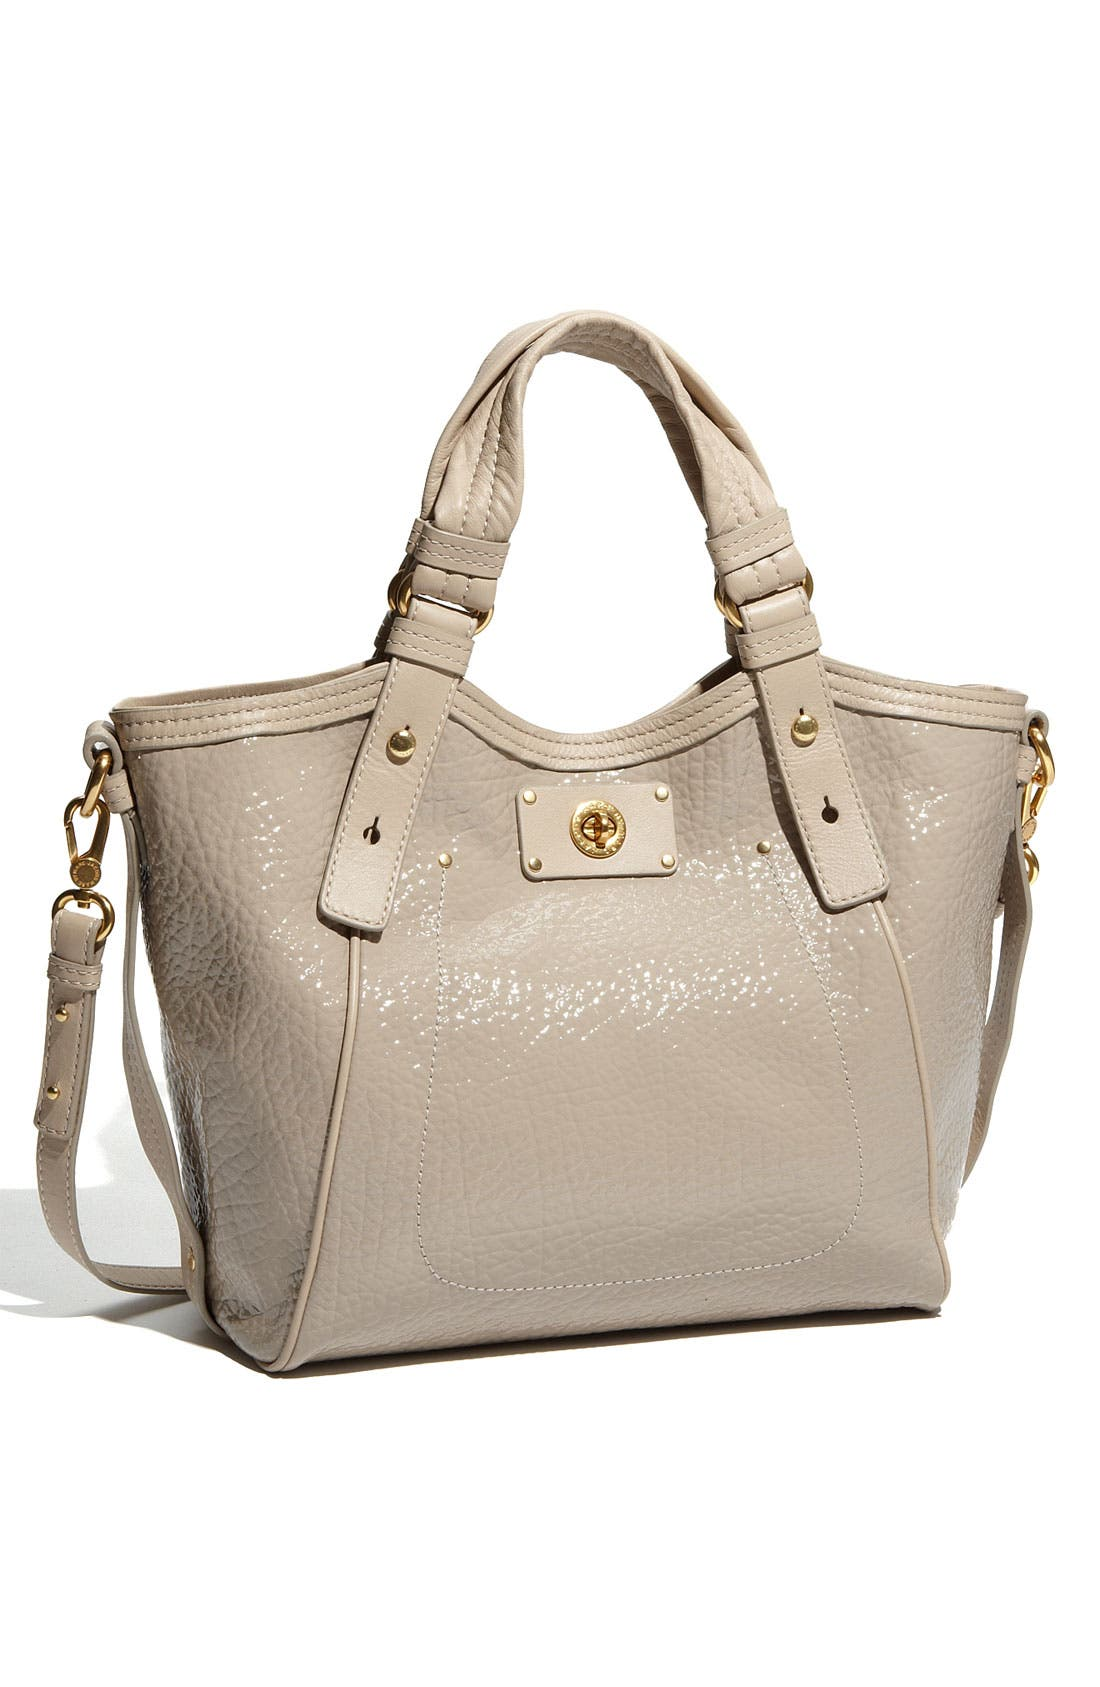 Alternate Image 1 Selected - MARC BY MARC JACOBS 'Turnlock Shine Fran - Small' Patent Tote